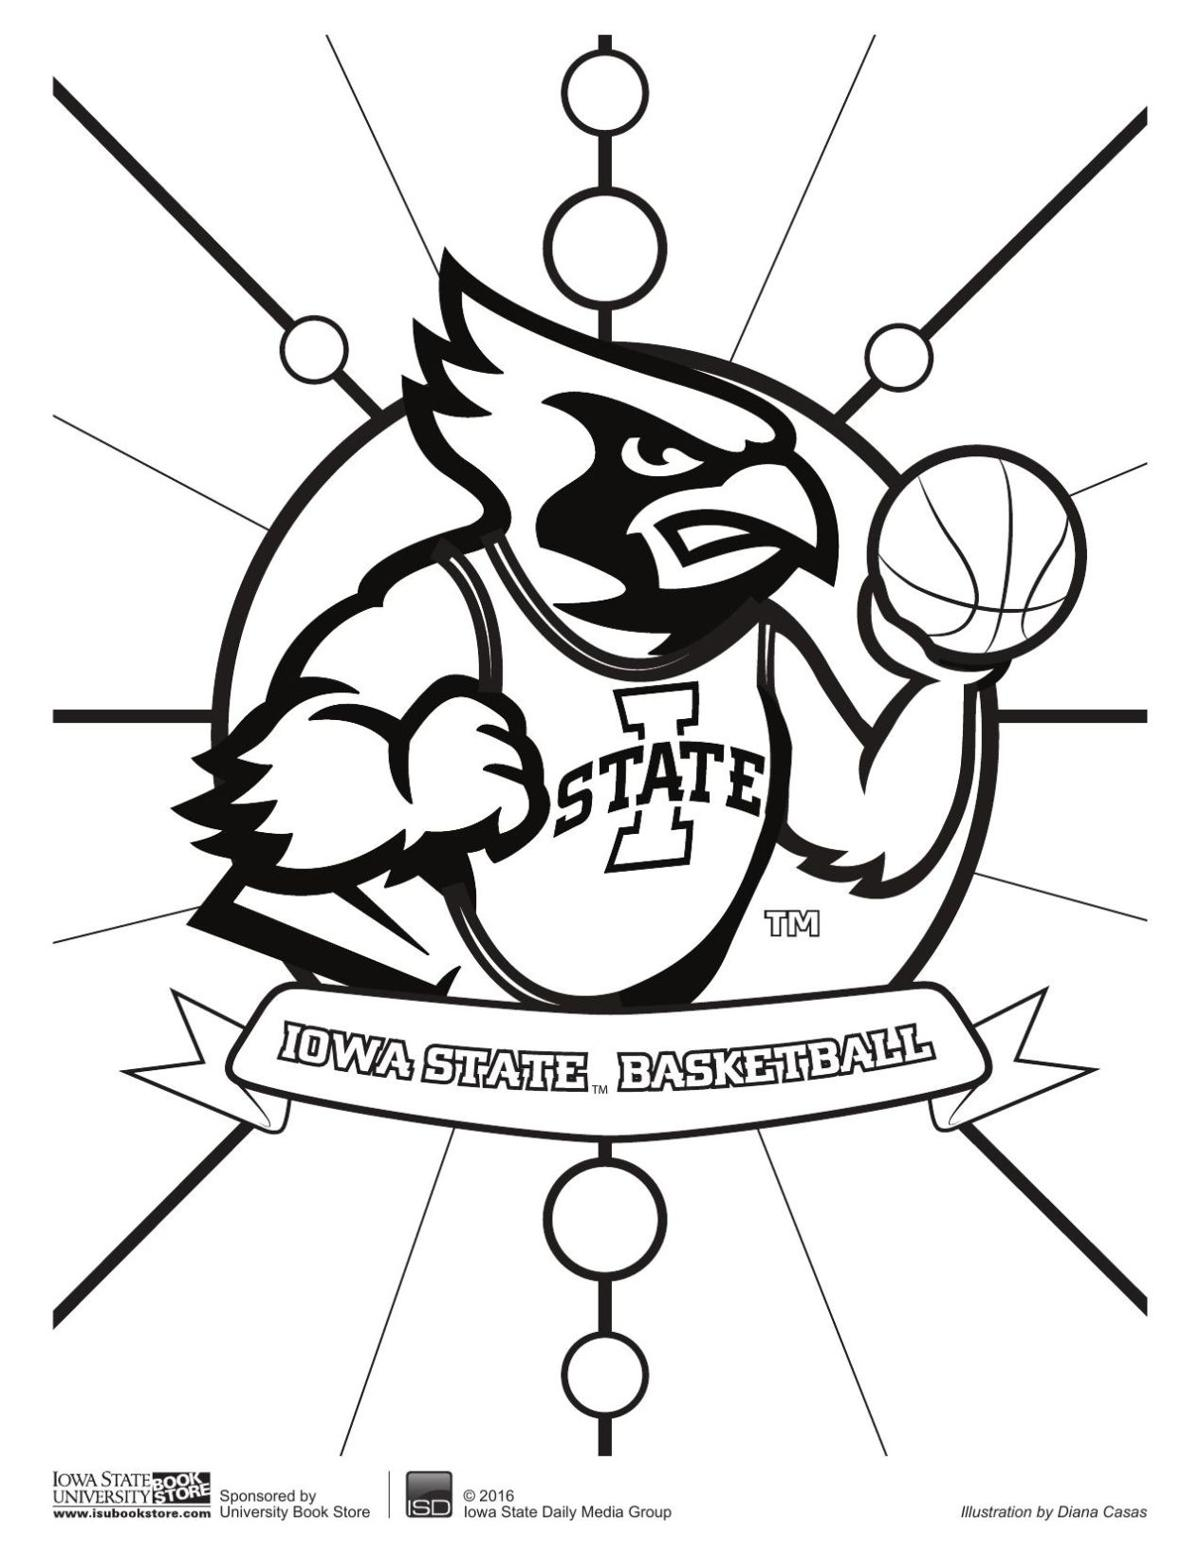 Cyclone coloring pages relieve stress | Fun Games | iowastatedaily.com